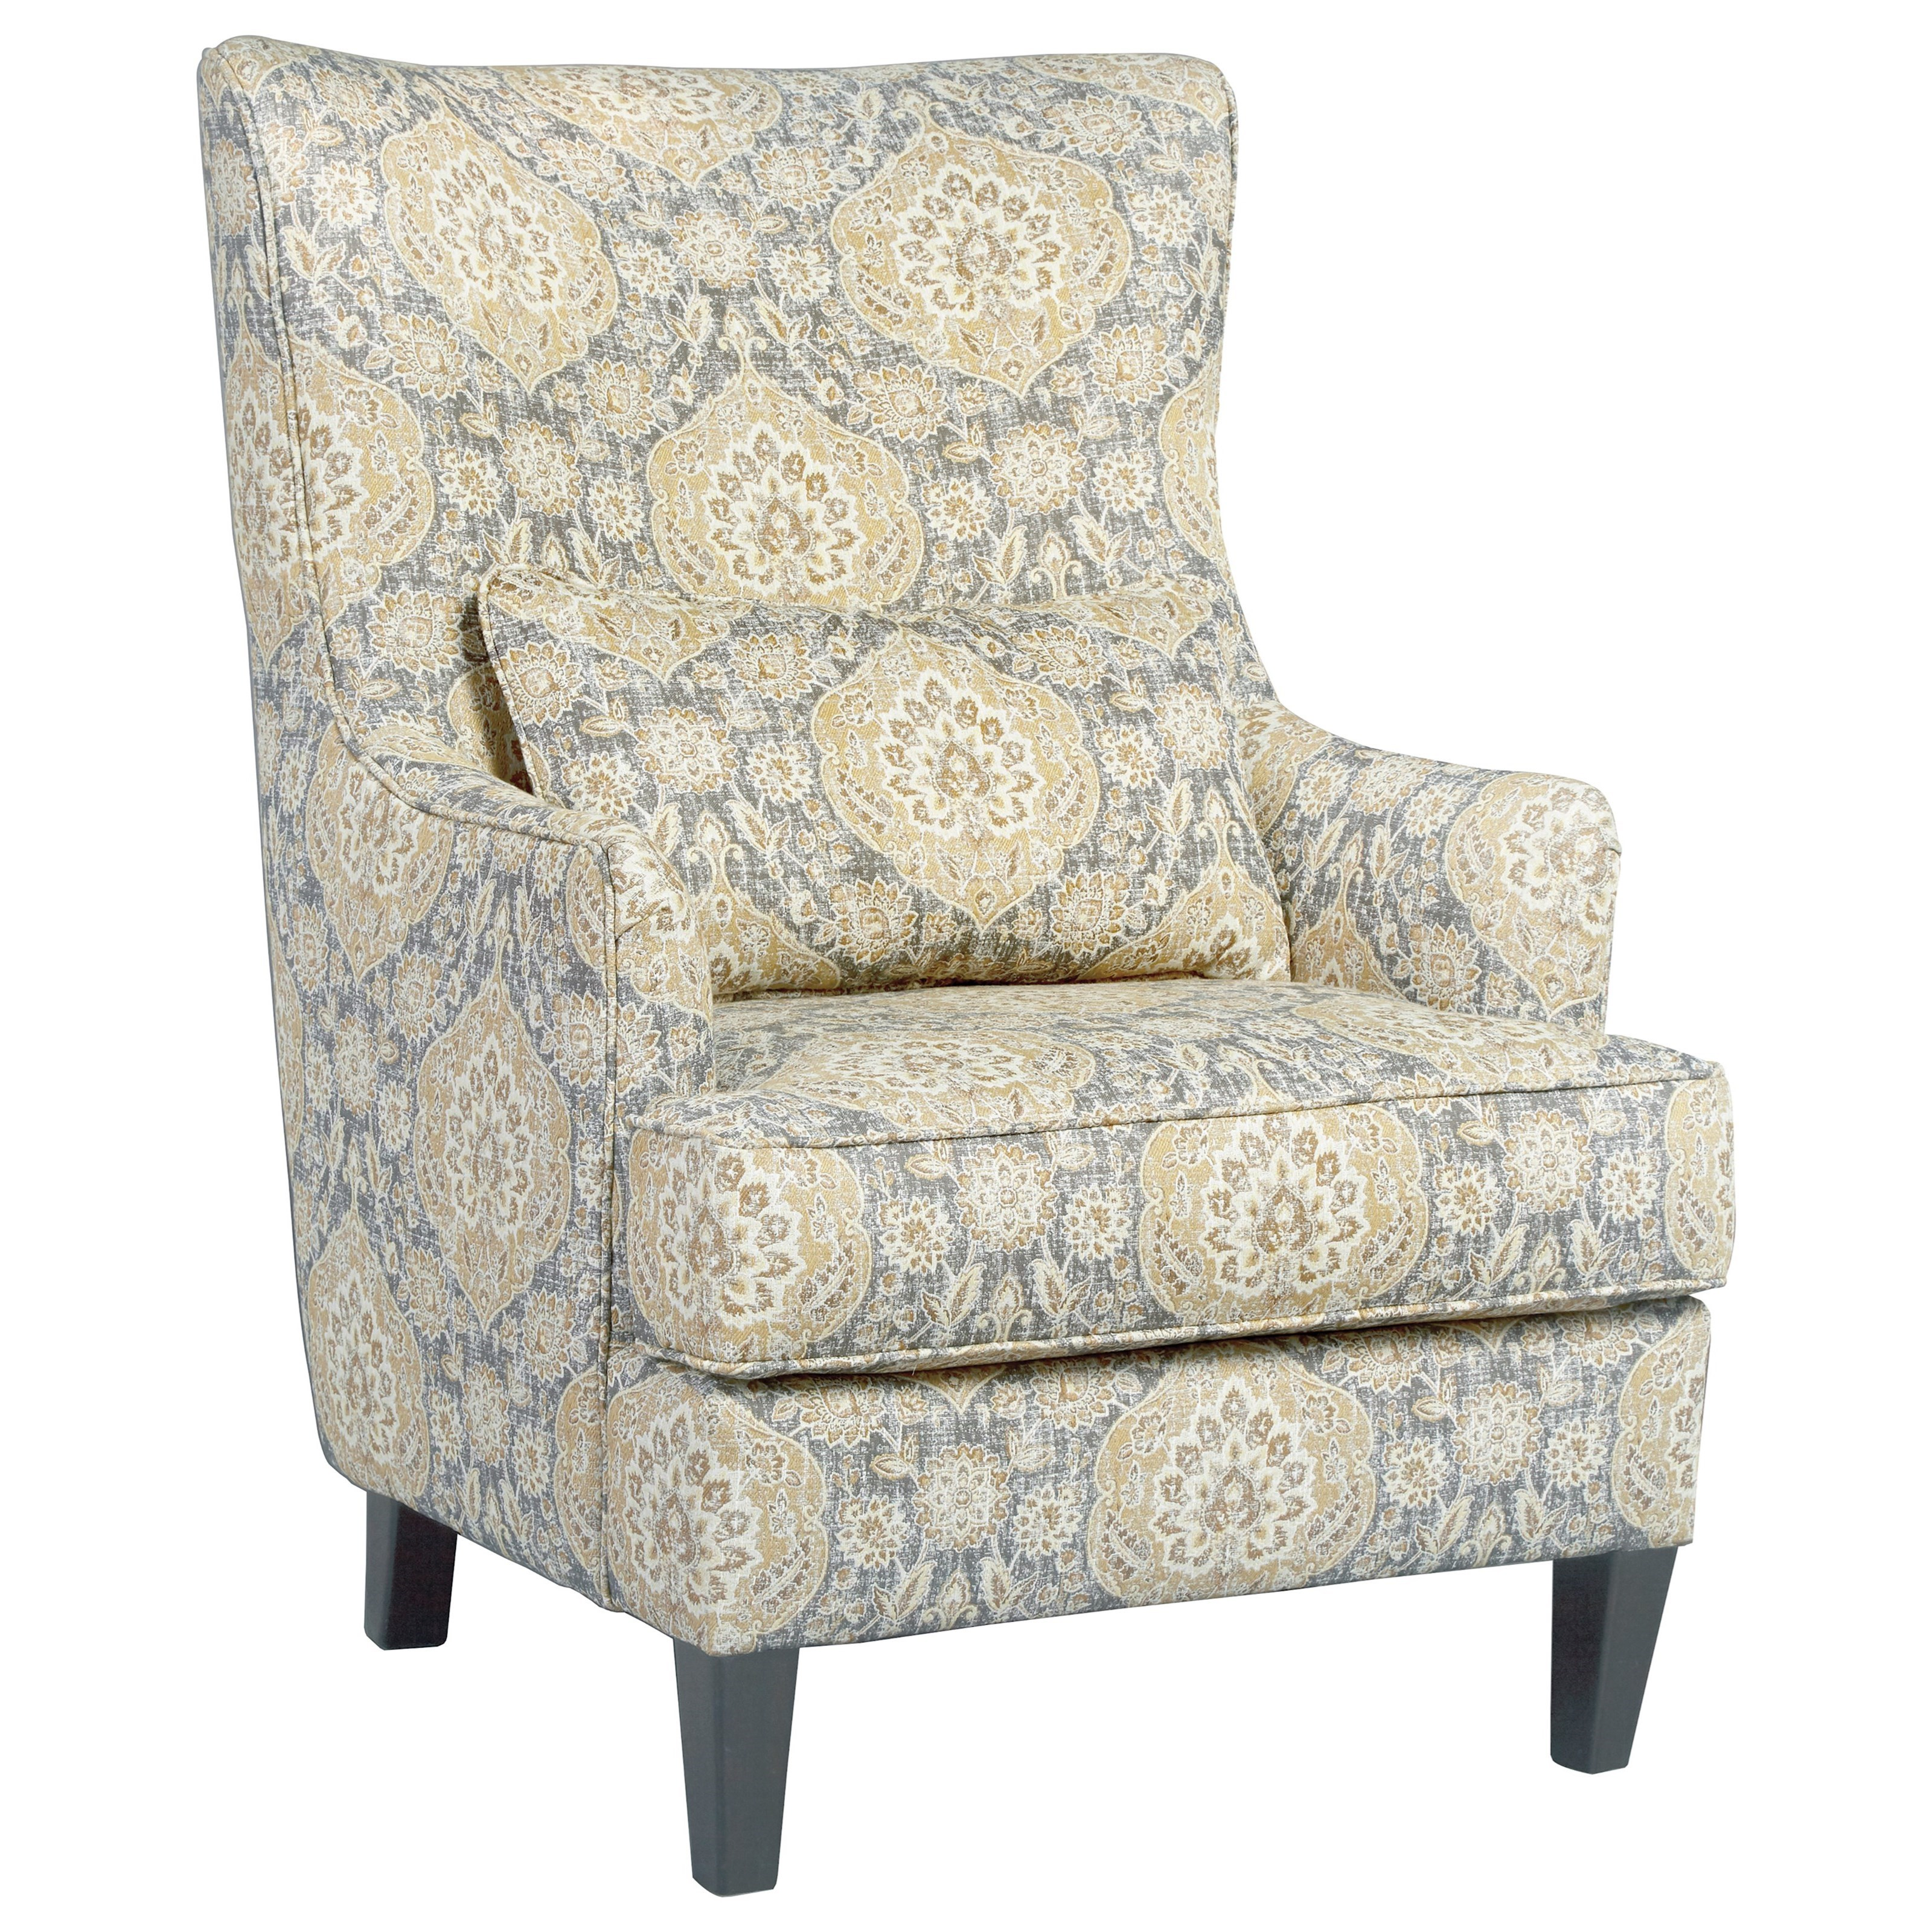 Ashley Furniture Accent Chair Ashley Furniture Aramore 1280522 Scalloped Wingback Accent